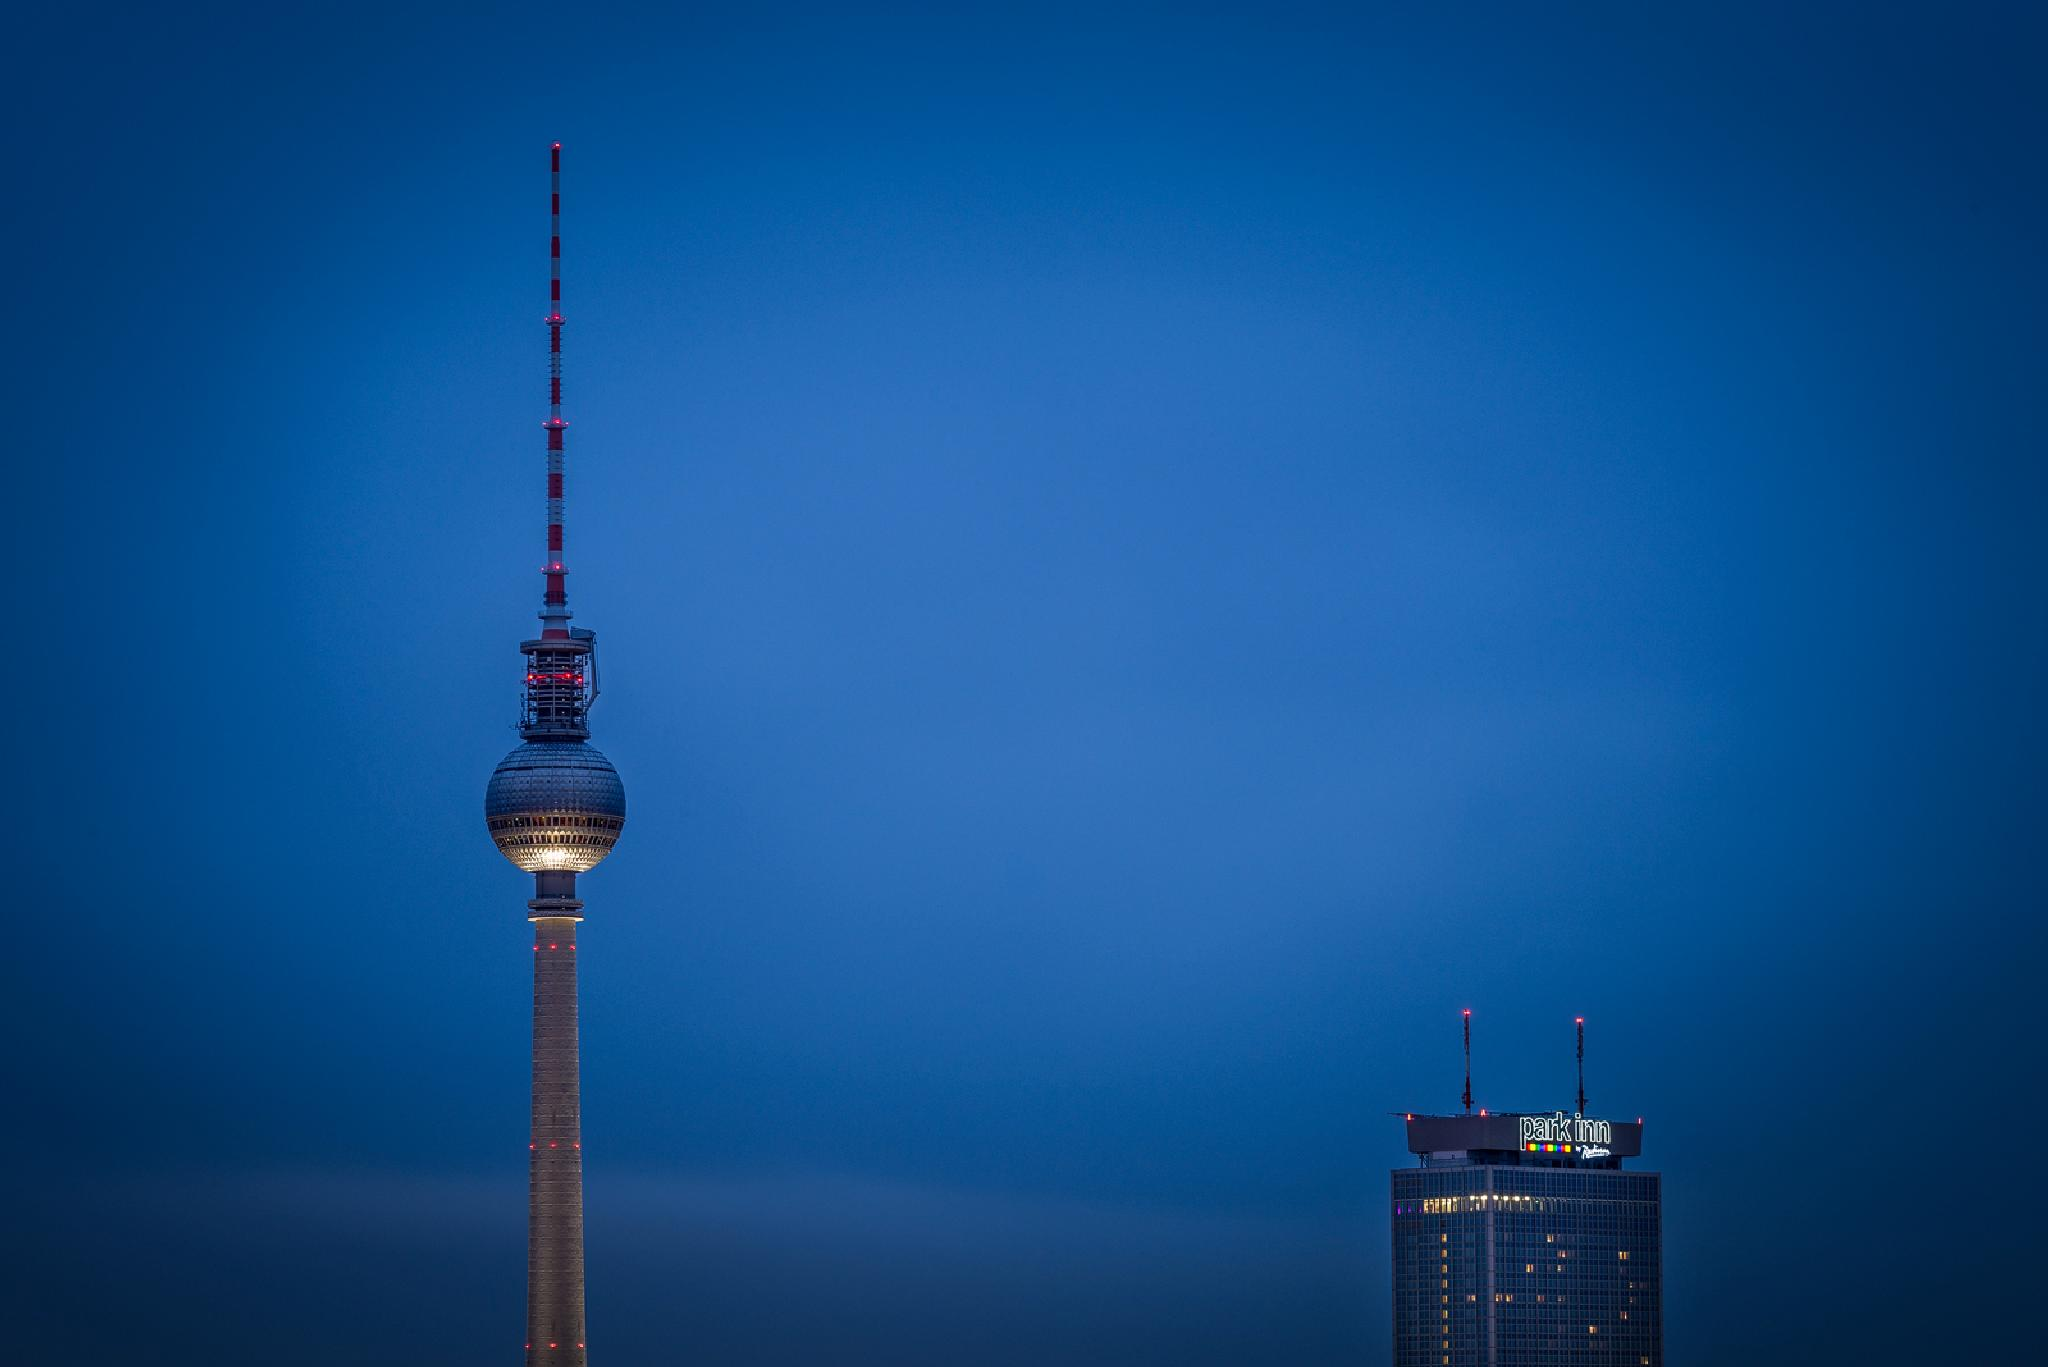 Berlin Telvision Tower and more by ThomasBechtleFotografie